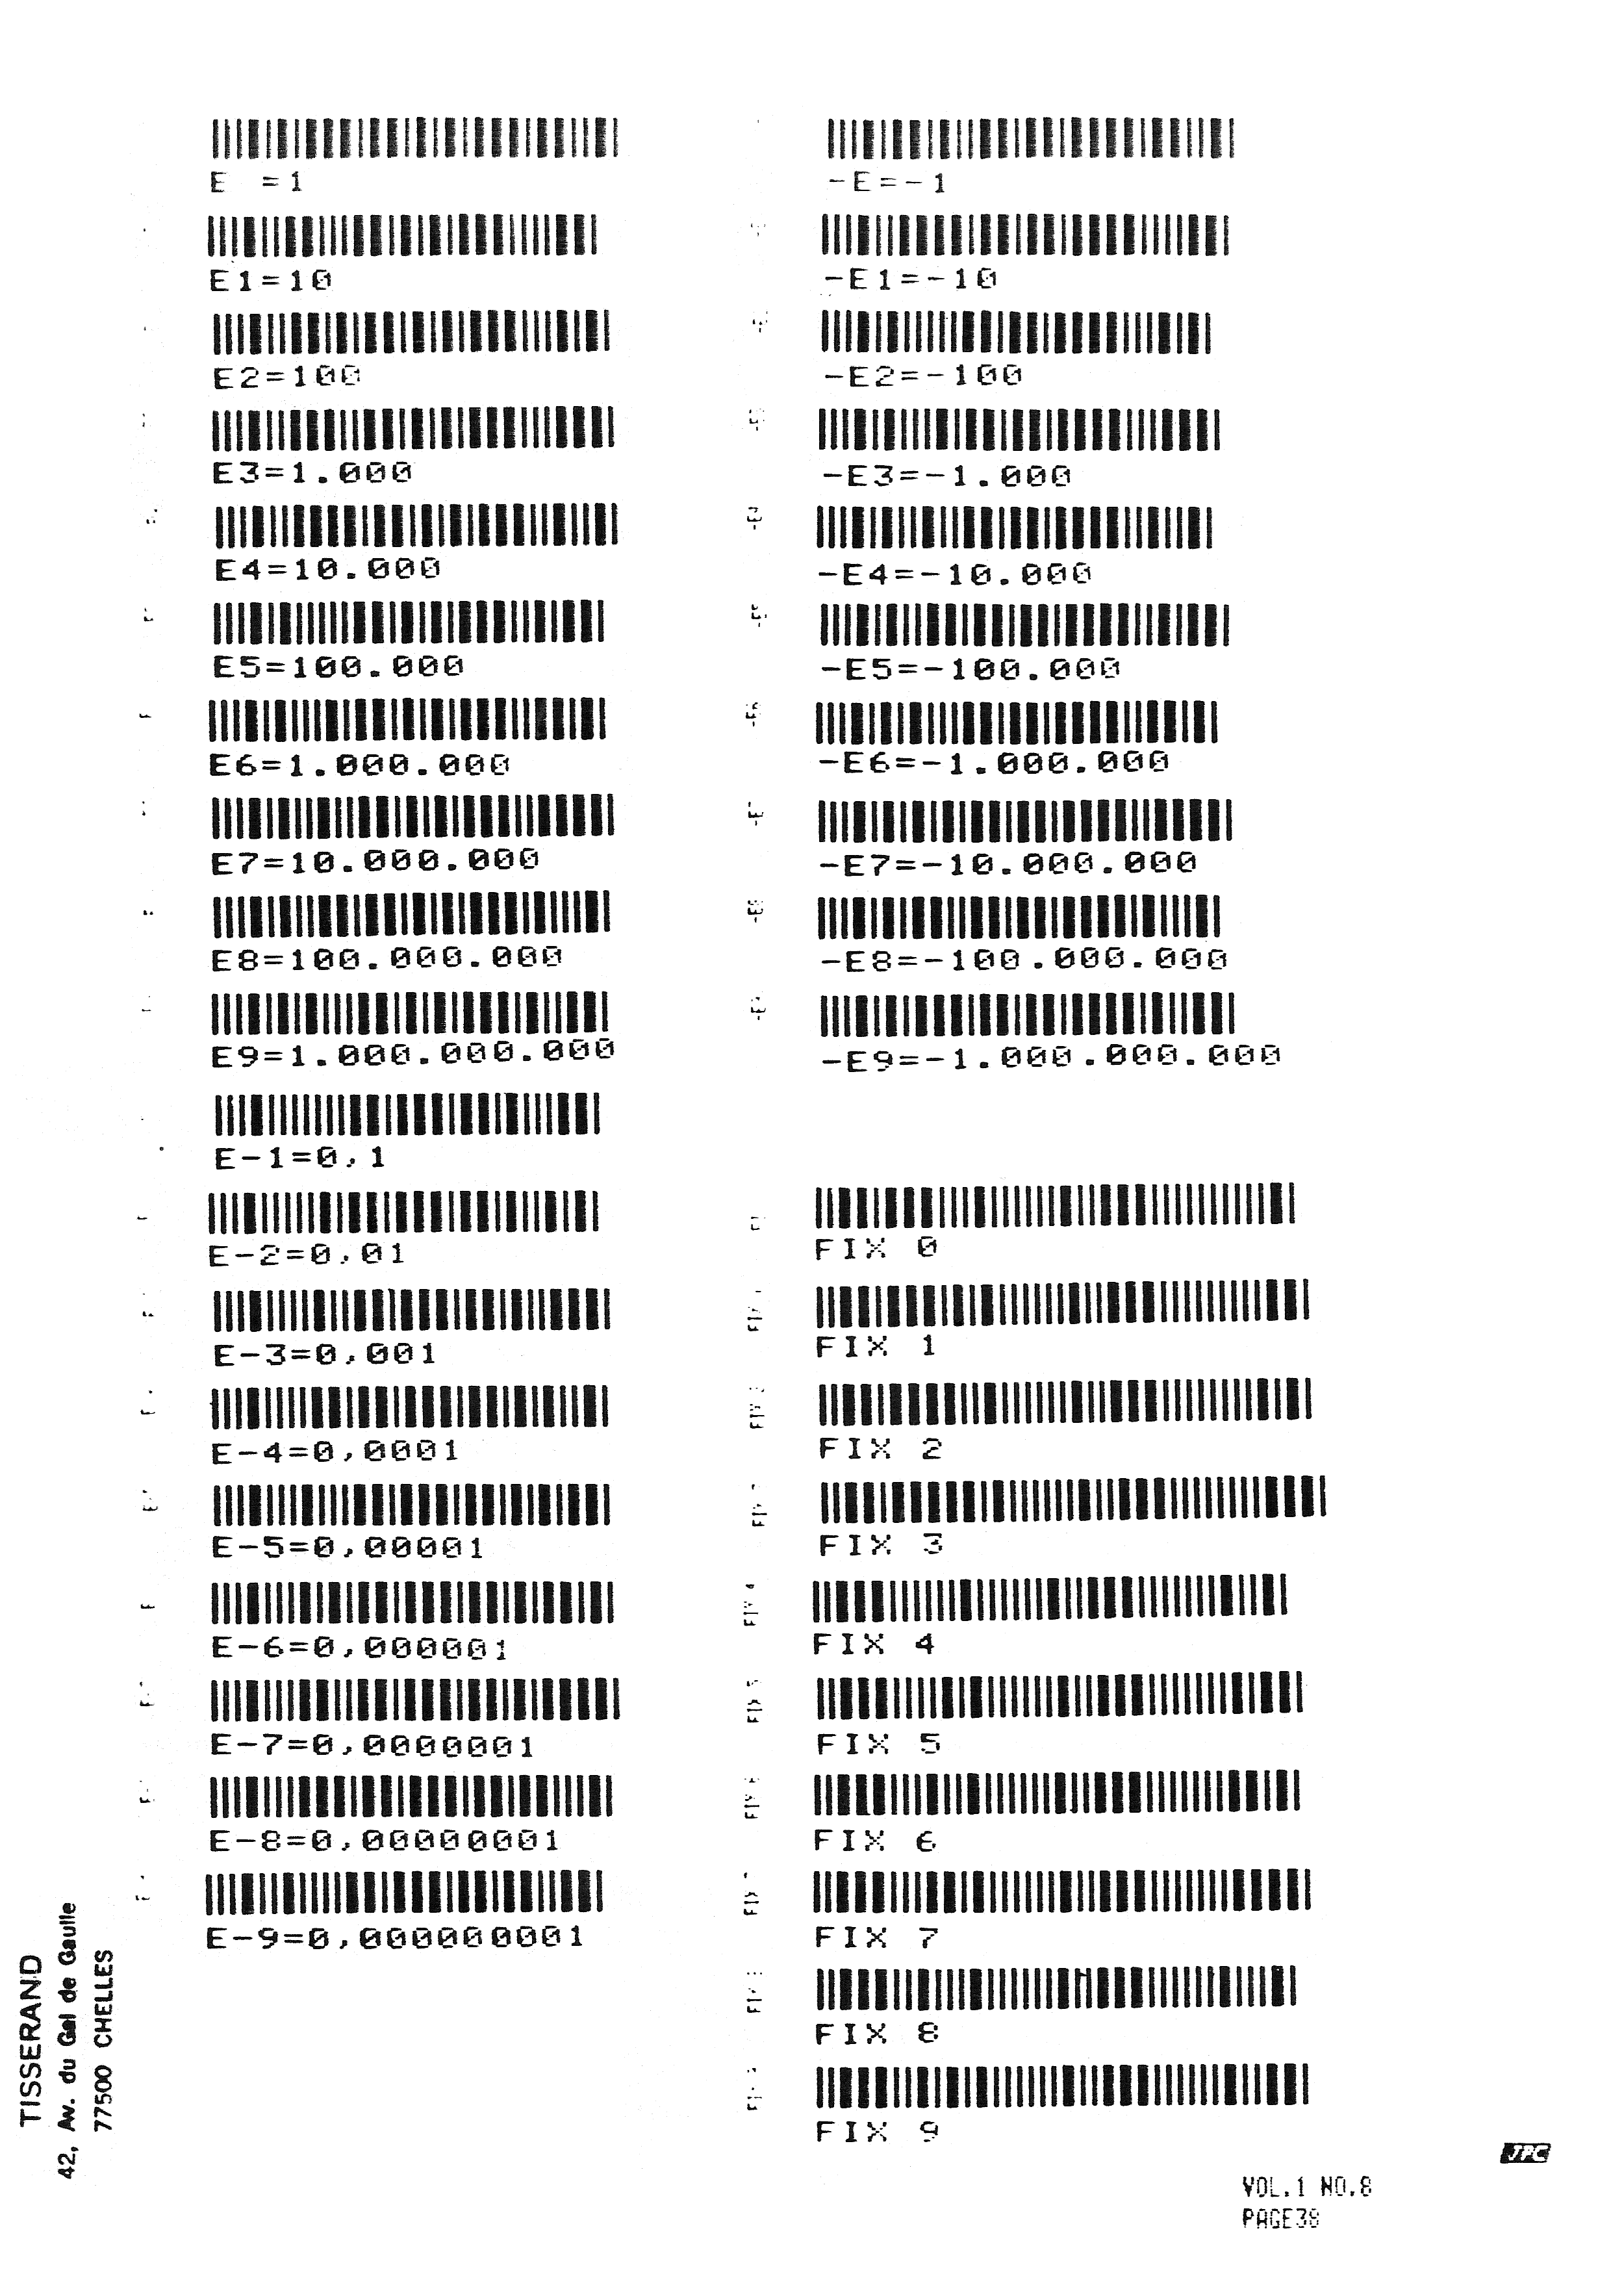 Jp-8-page-38-1000